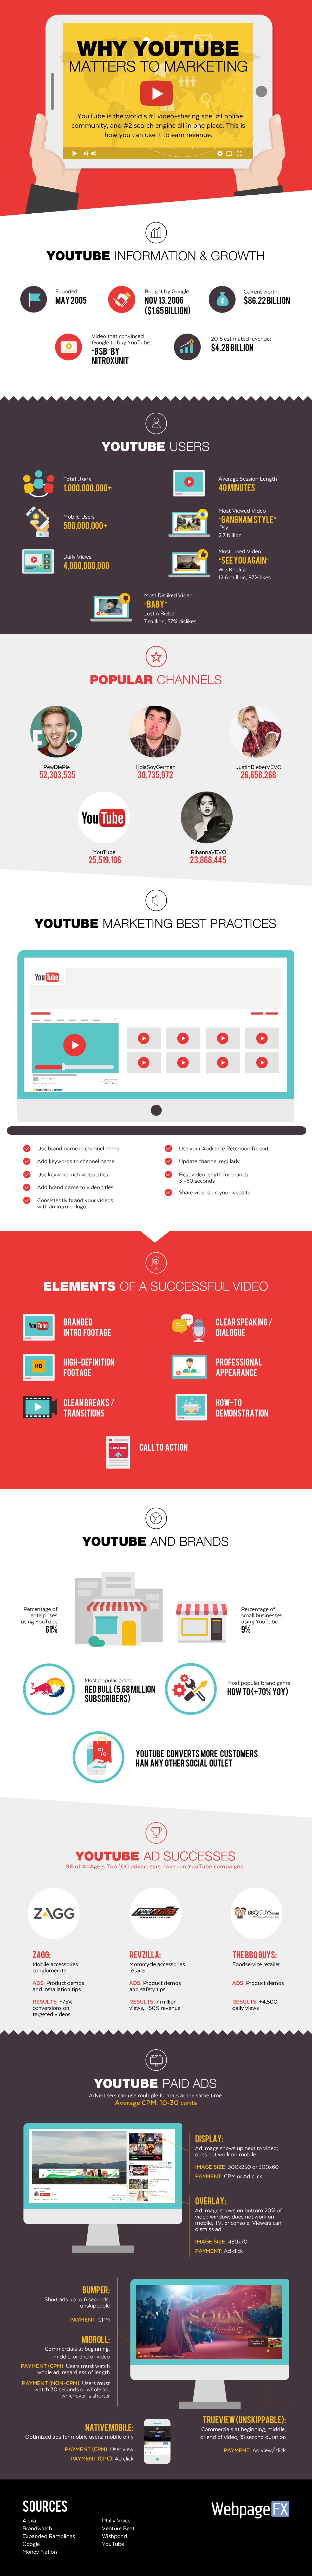 Why You Should Market on YouTube [Infographic]